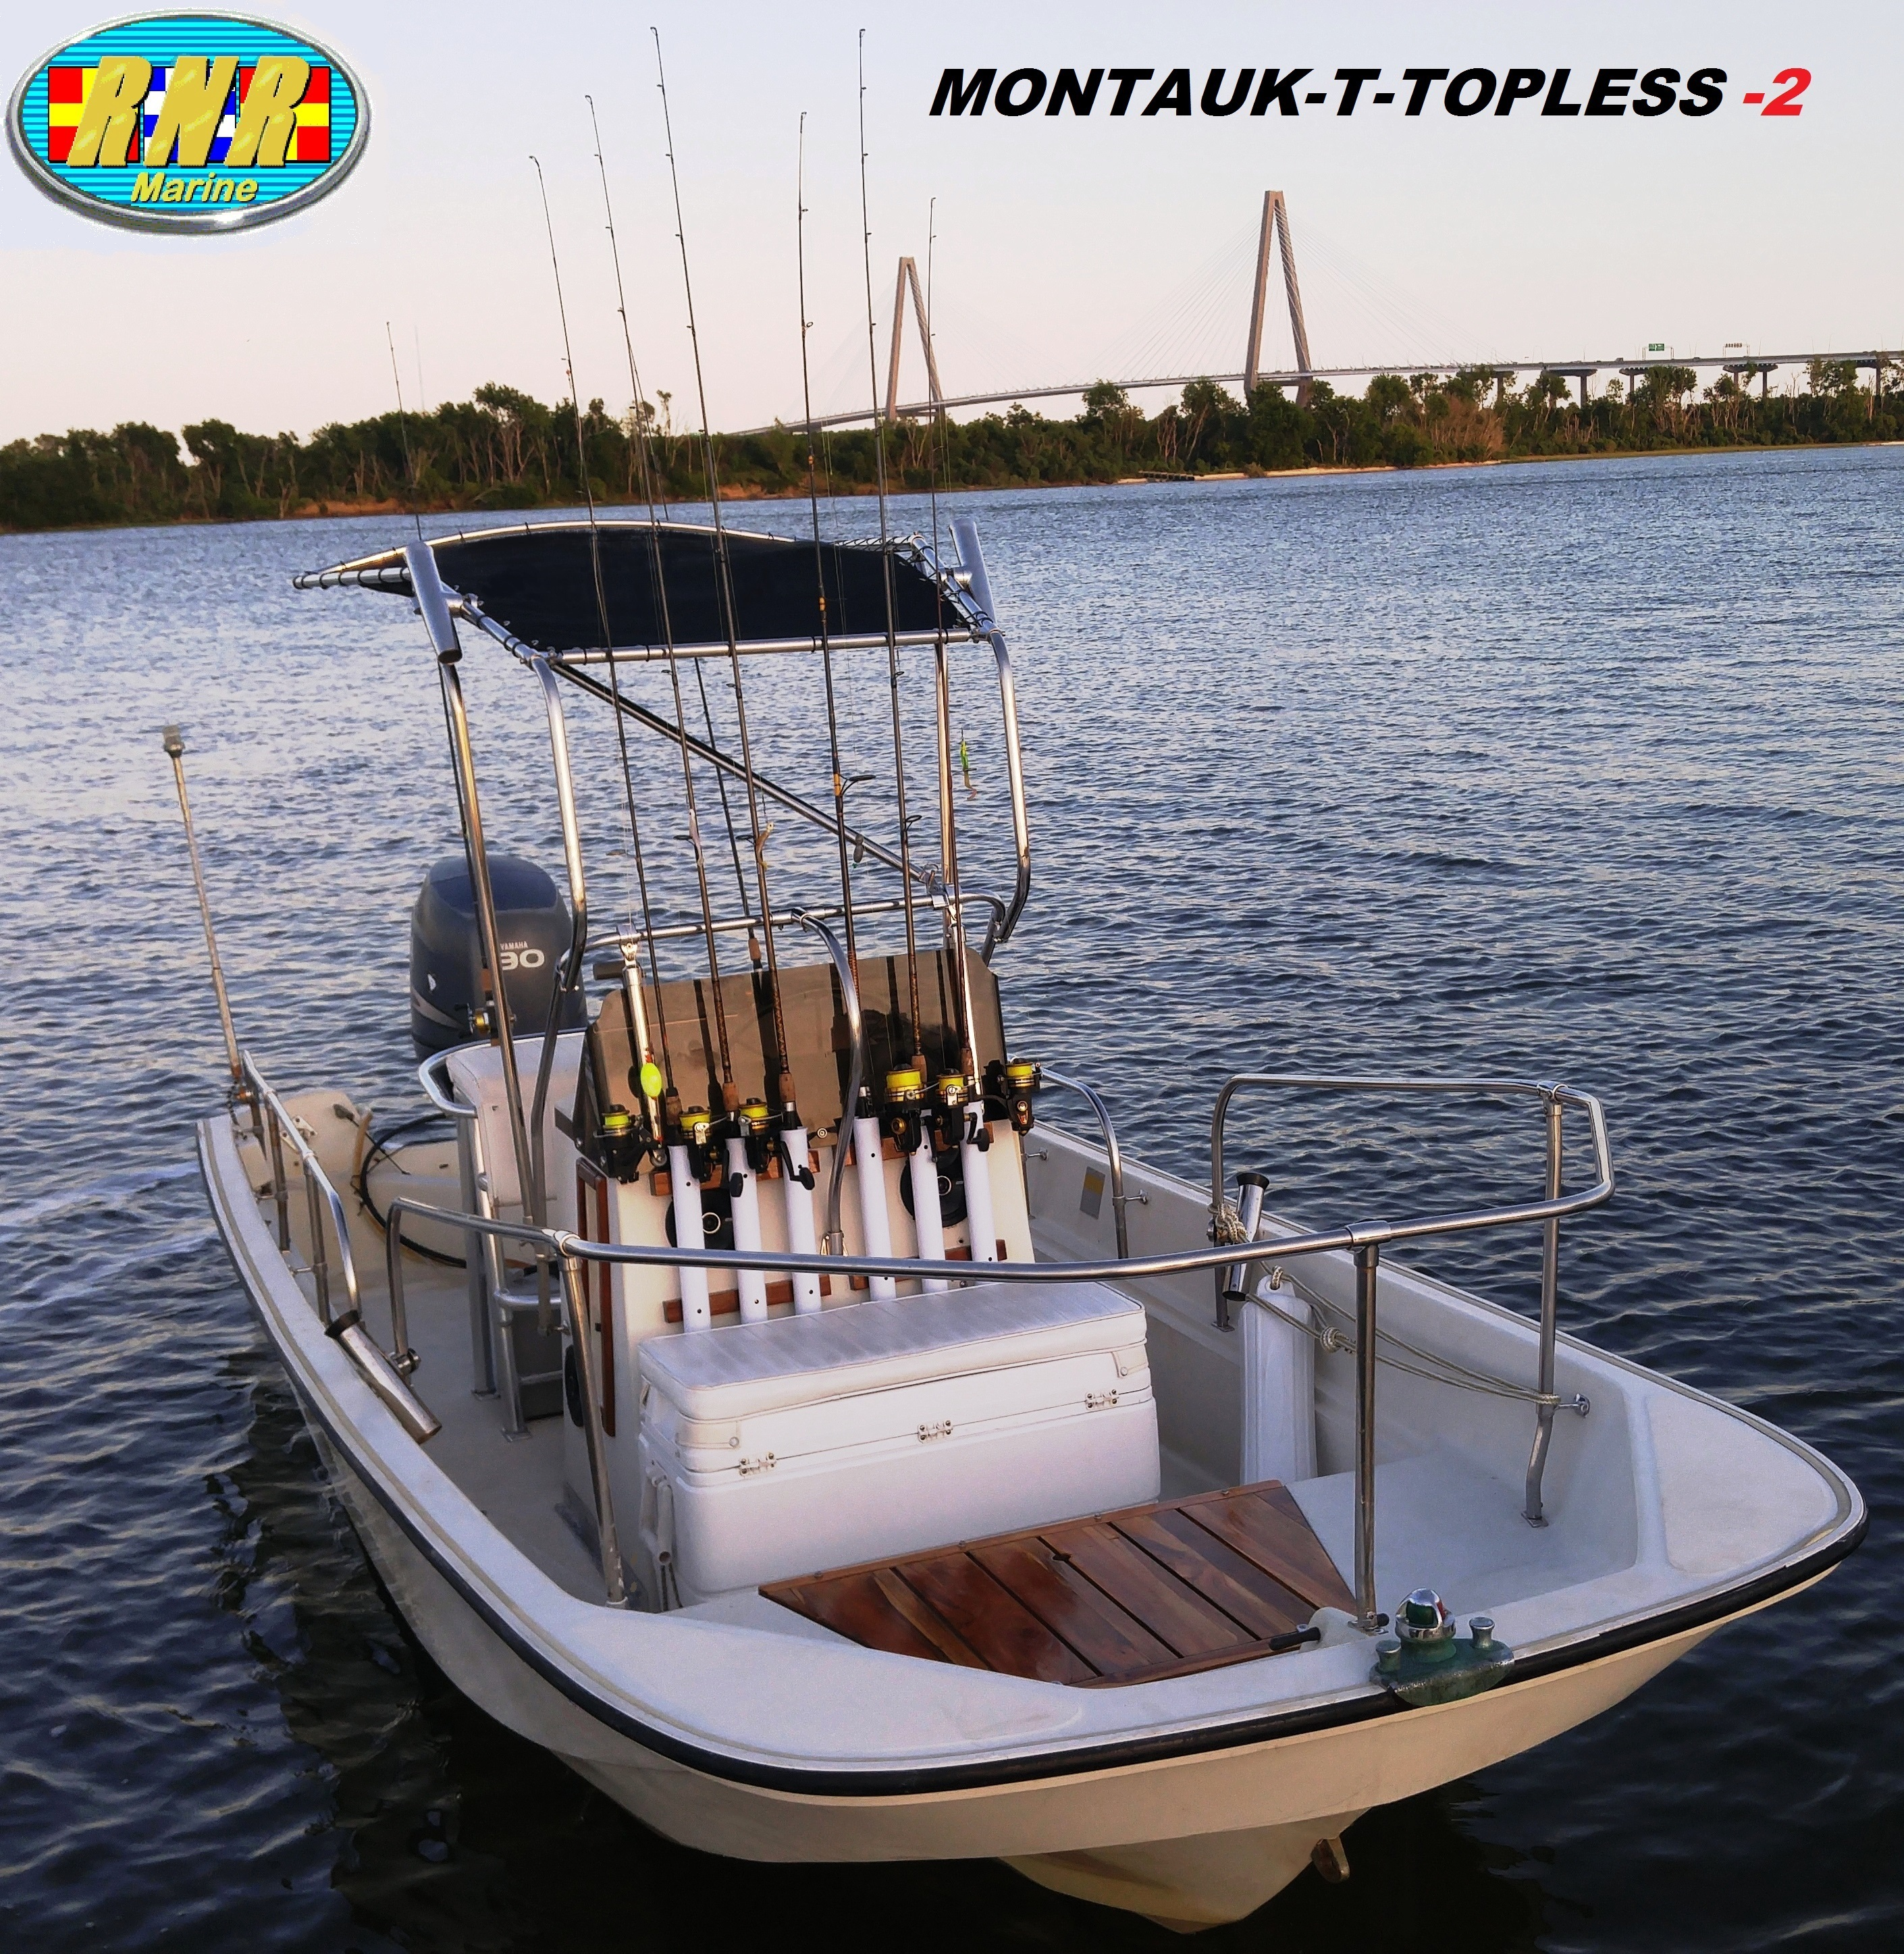 Boston Whaler Montauk 17, 19xx, Montauk-T-Topless™ (MT2) on the water Cooper River Bridge, starboard front